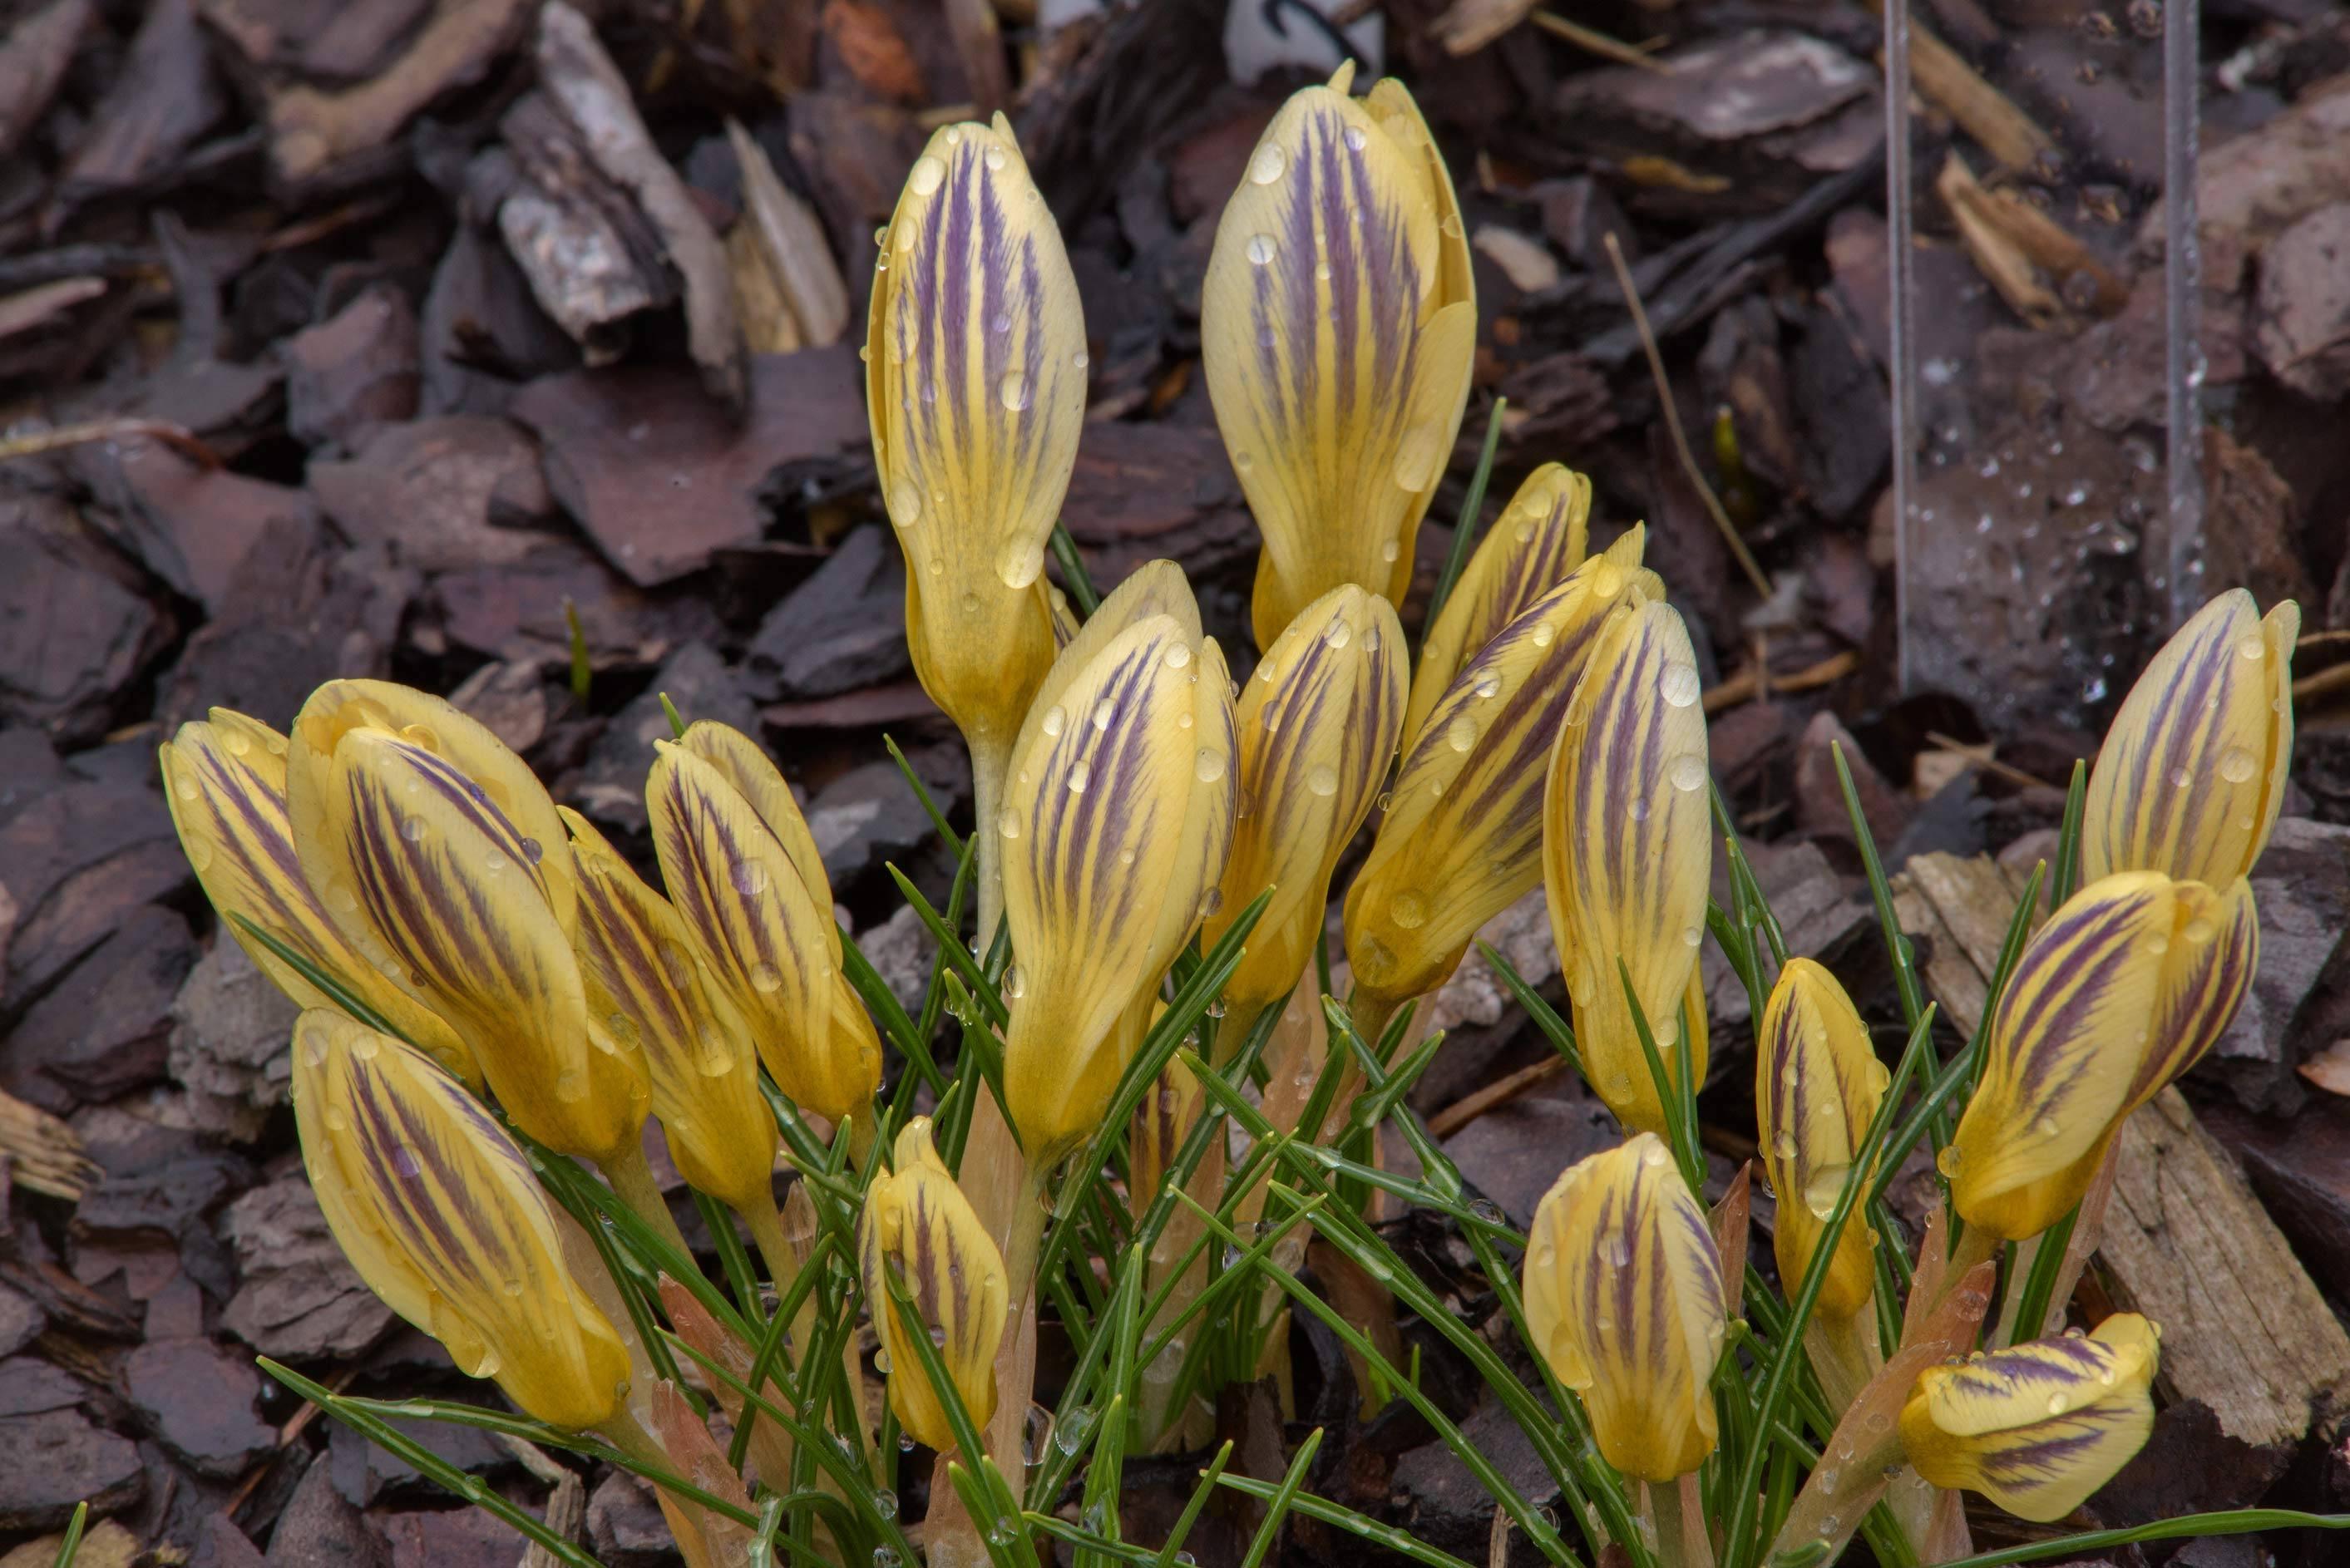 Crocus chrysanthus 'Marietta' in Botanic Gardens...Institute. St.Petersburg, Russia